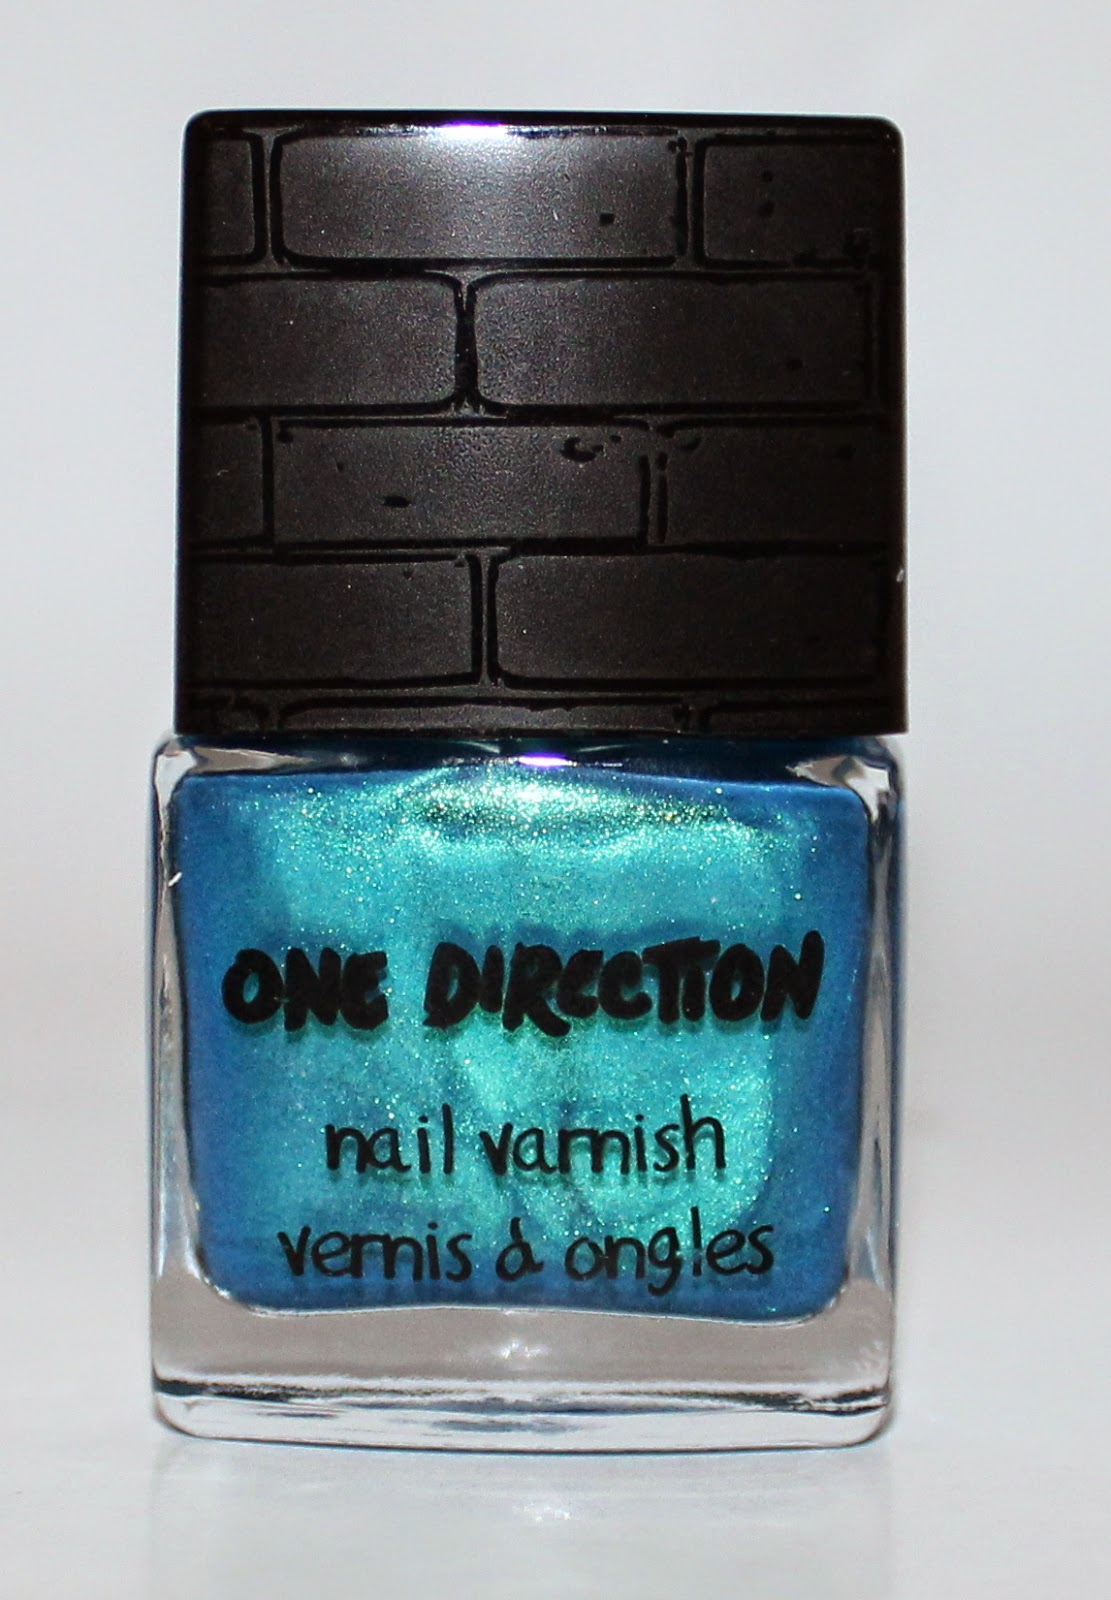 Make Up by One Direction Na Na Na Nail Varnish